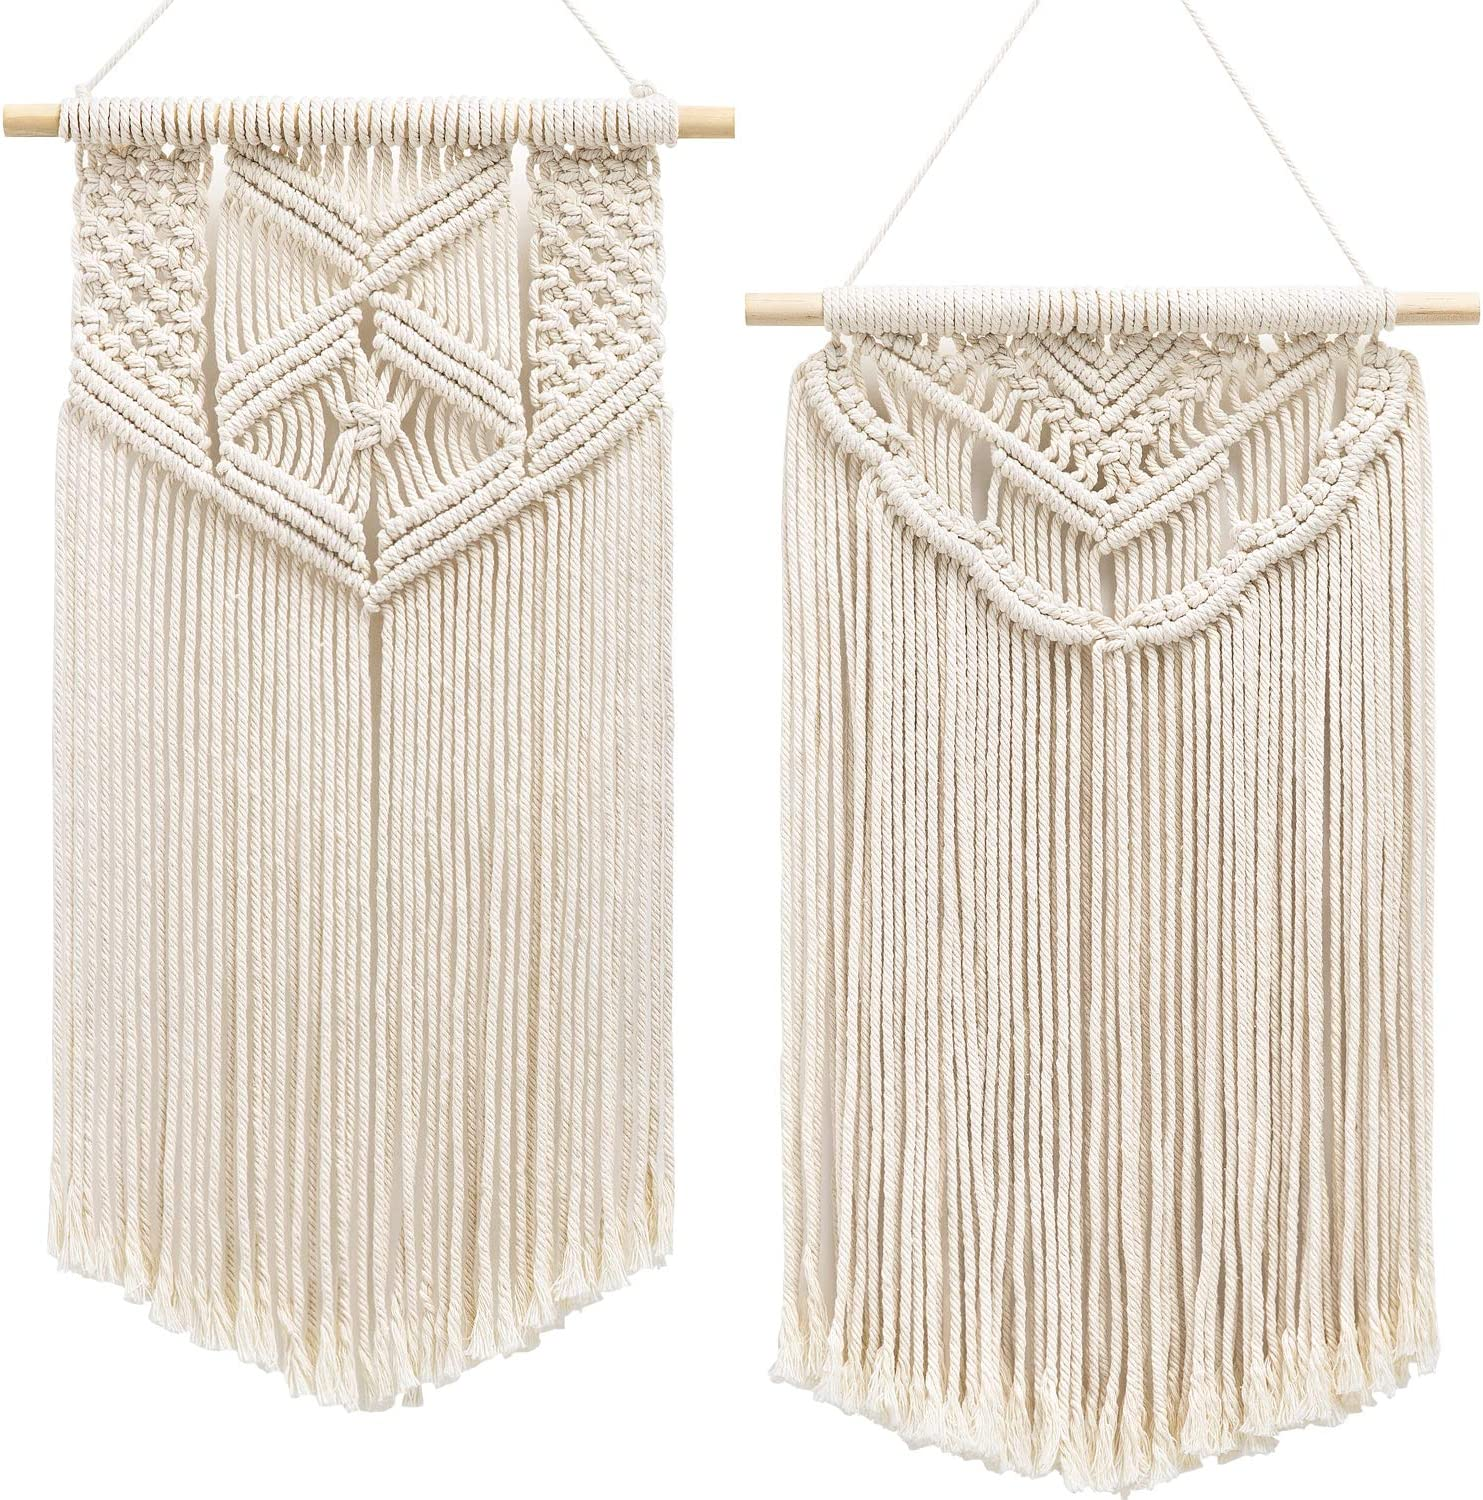 "Mkono 2 Pcs Macrame Wall Hanging Art Woven Wall Decor Boho Chic Home Decoration for Apartment Bedroom Living Room Gallery, 22"" L x 13"" W and 24"" L x 13"" W"